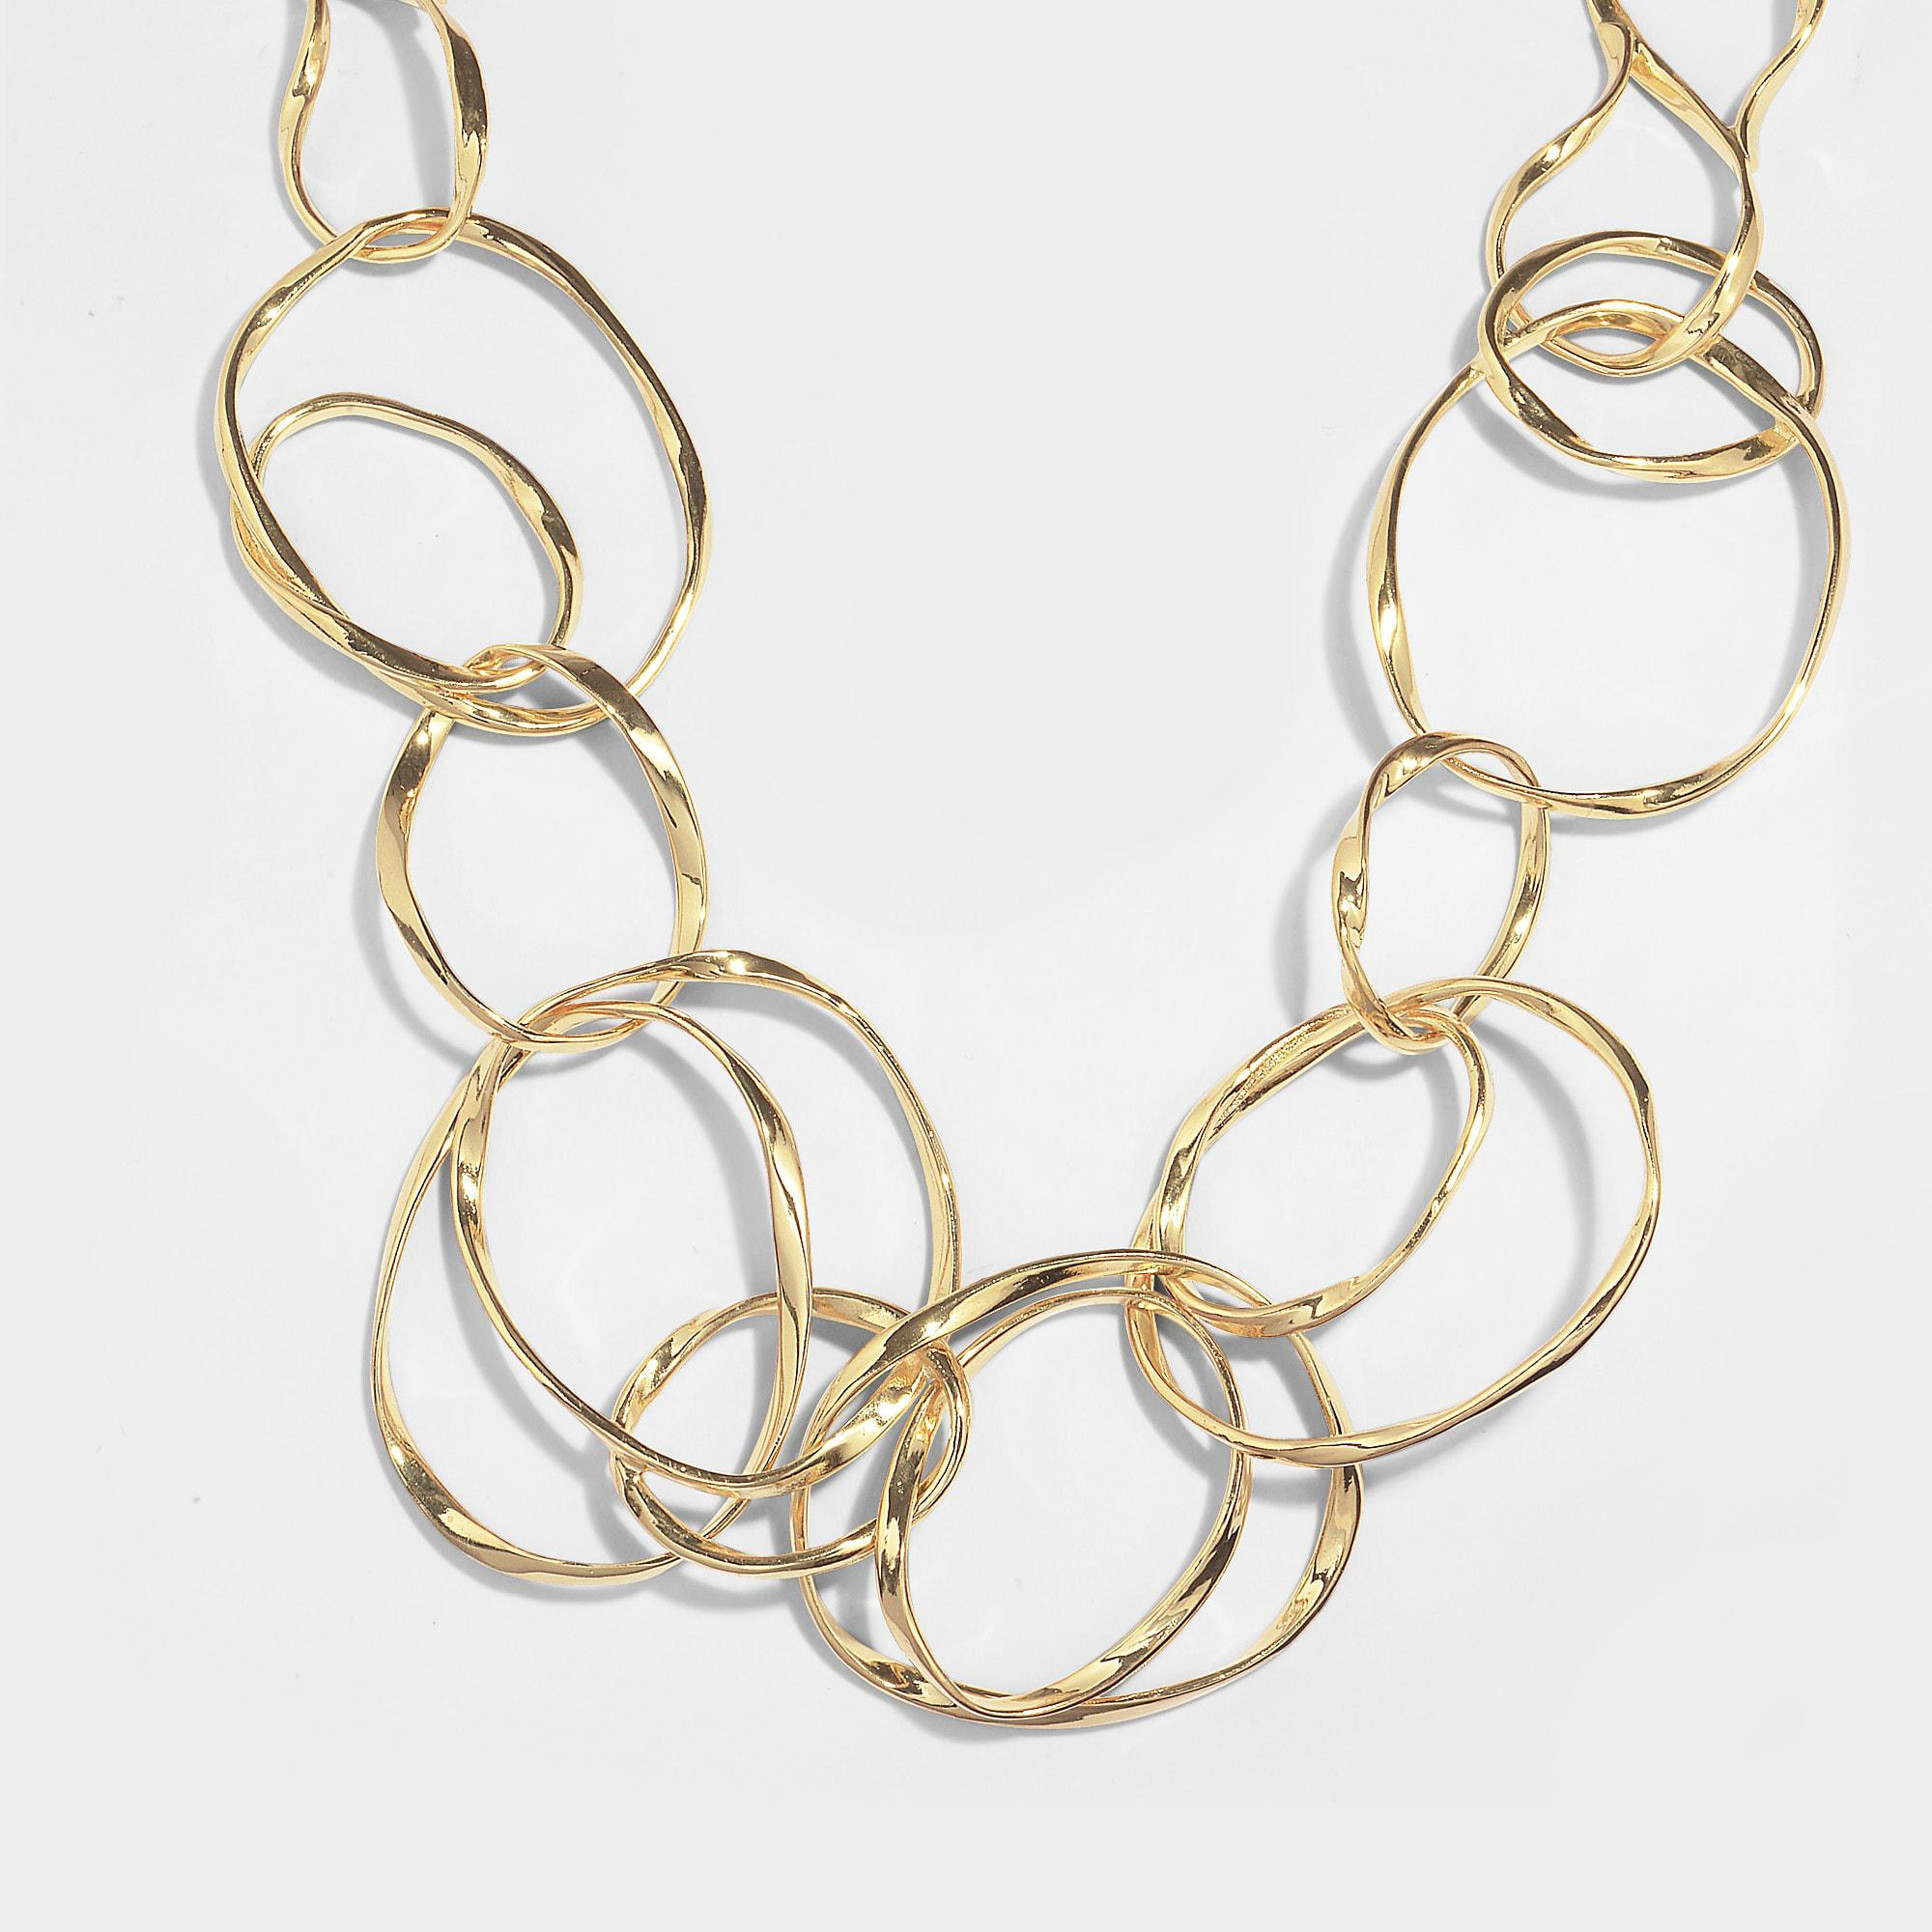 Maria Long Necklace in 18K Gold-Plated Brass Aur ff6hgZSAh